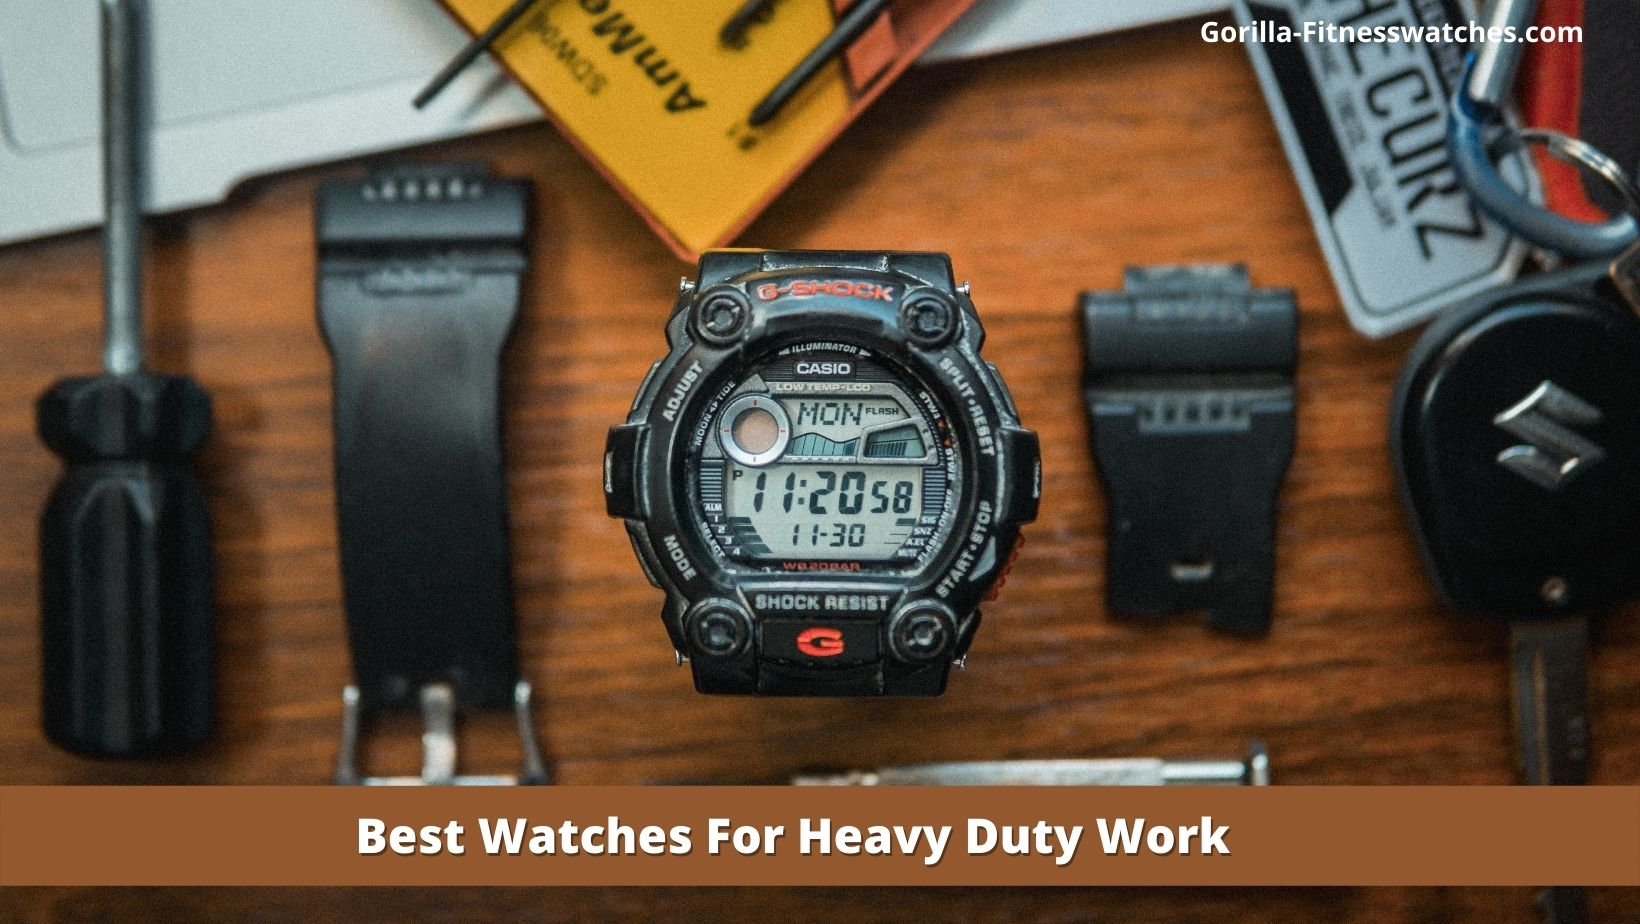 Best Watches For Heavy Duty Work